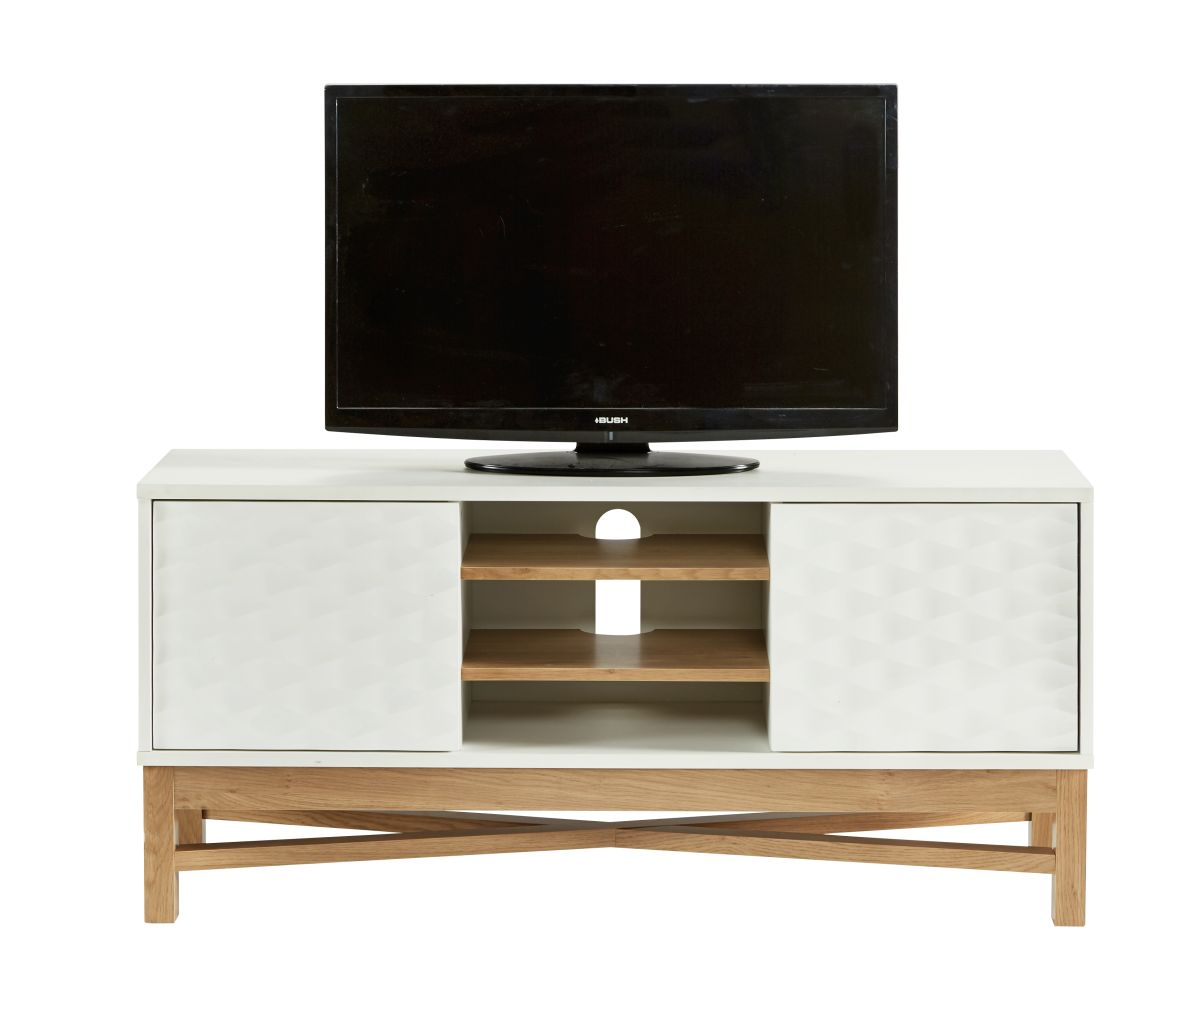 sports shoes a9ff2 40f03 TV stands: 10 best TV benches to enhance your viewing | Real ...